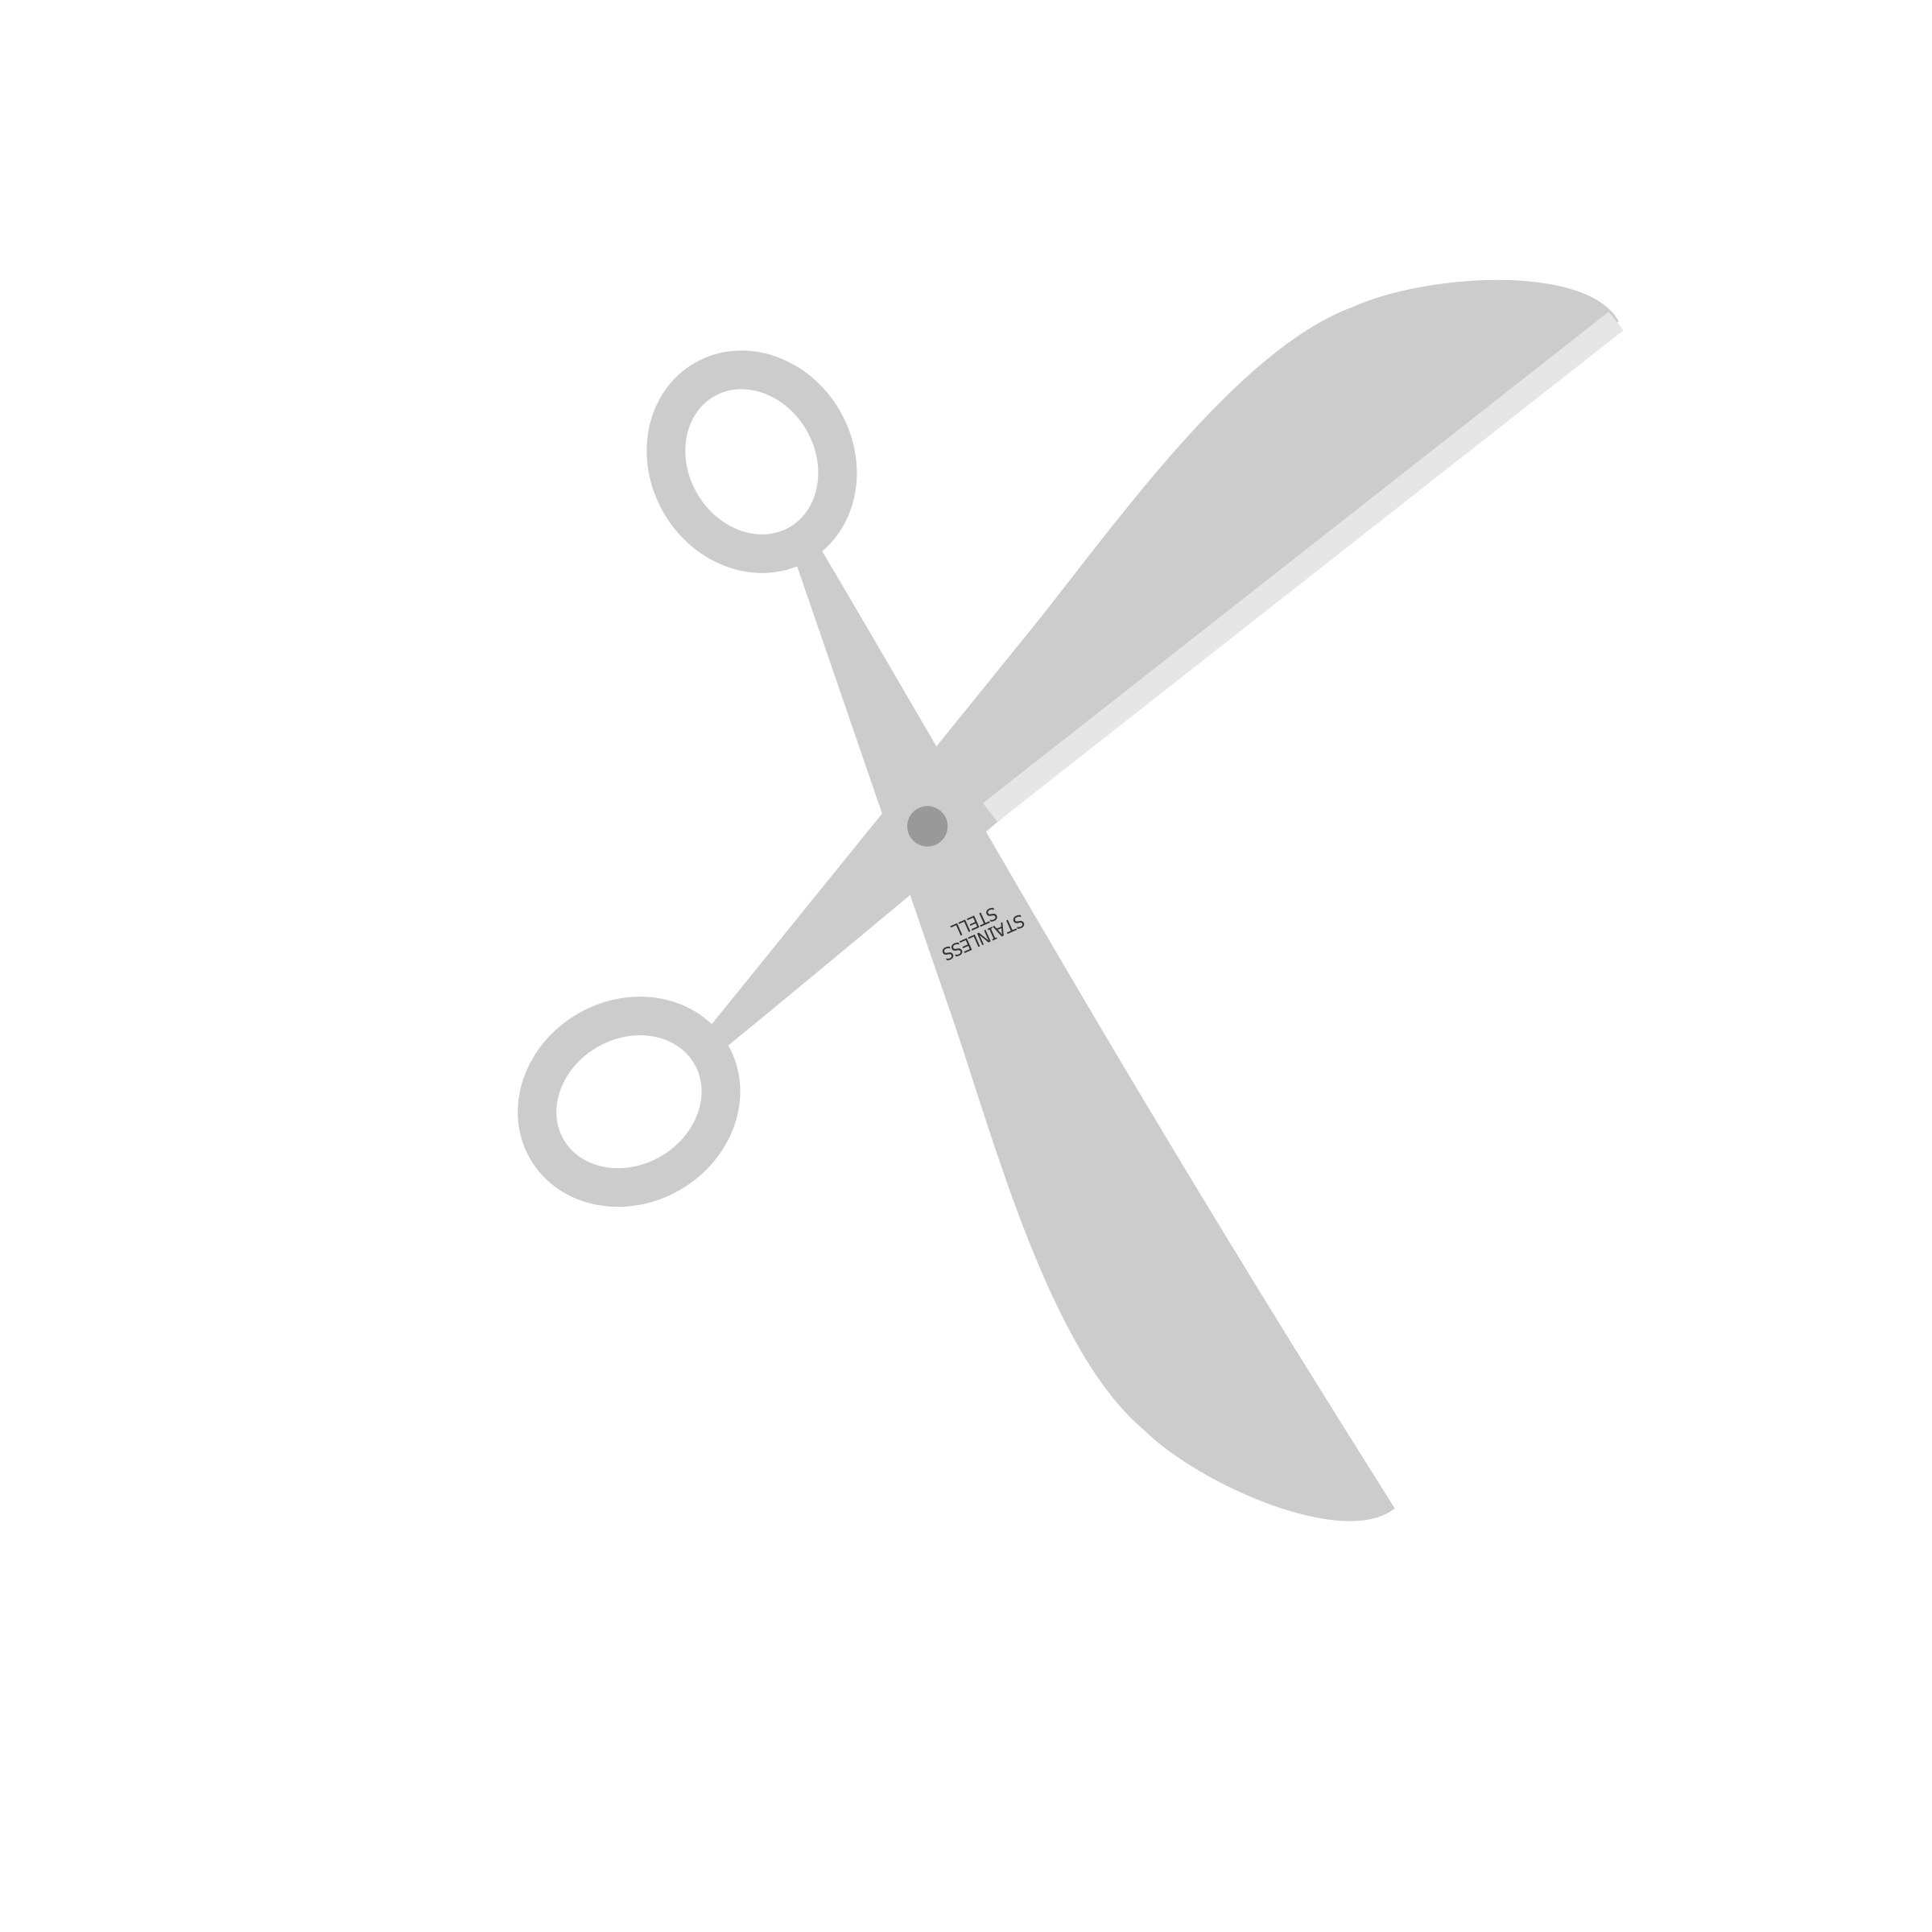 It scissors by slv850